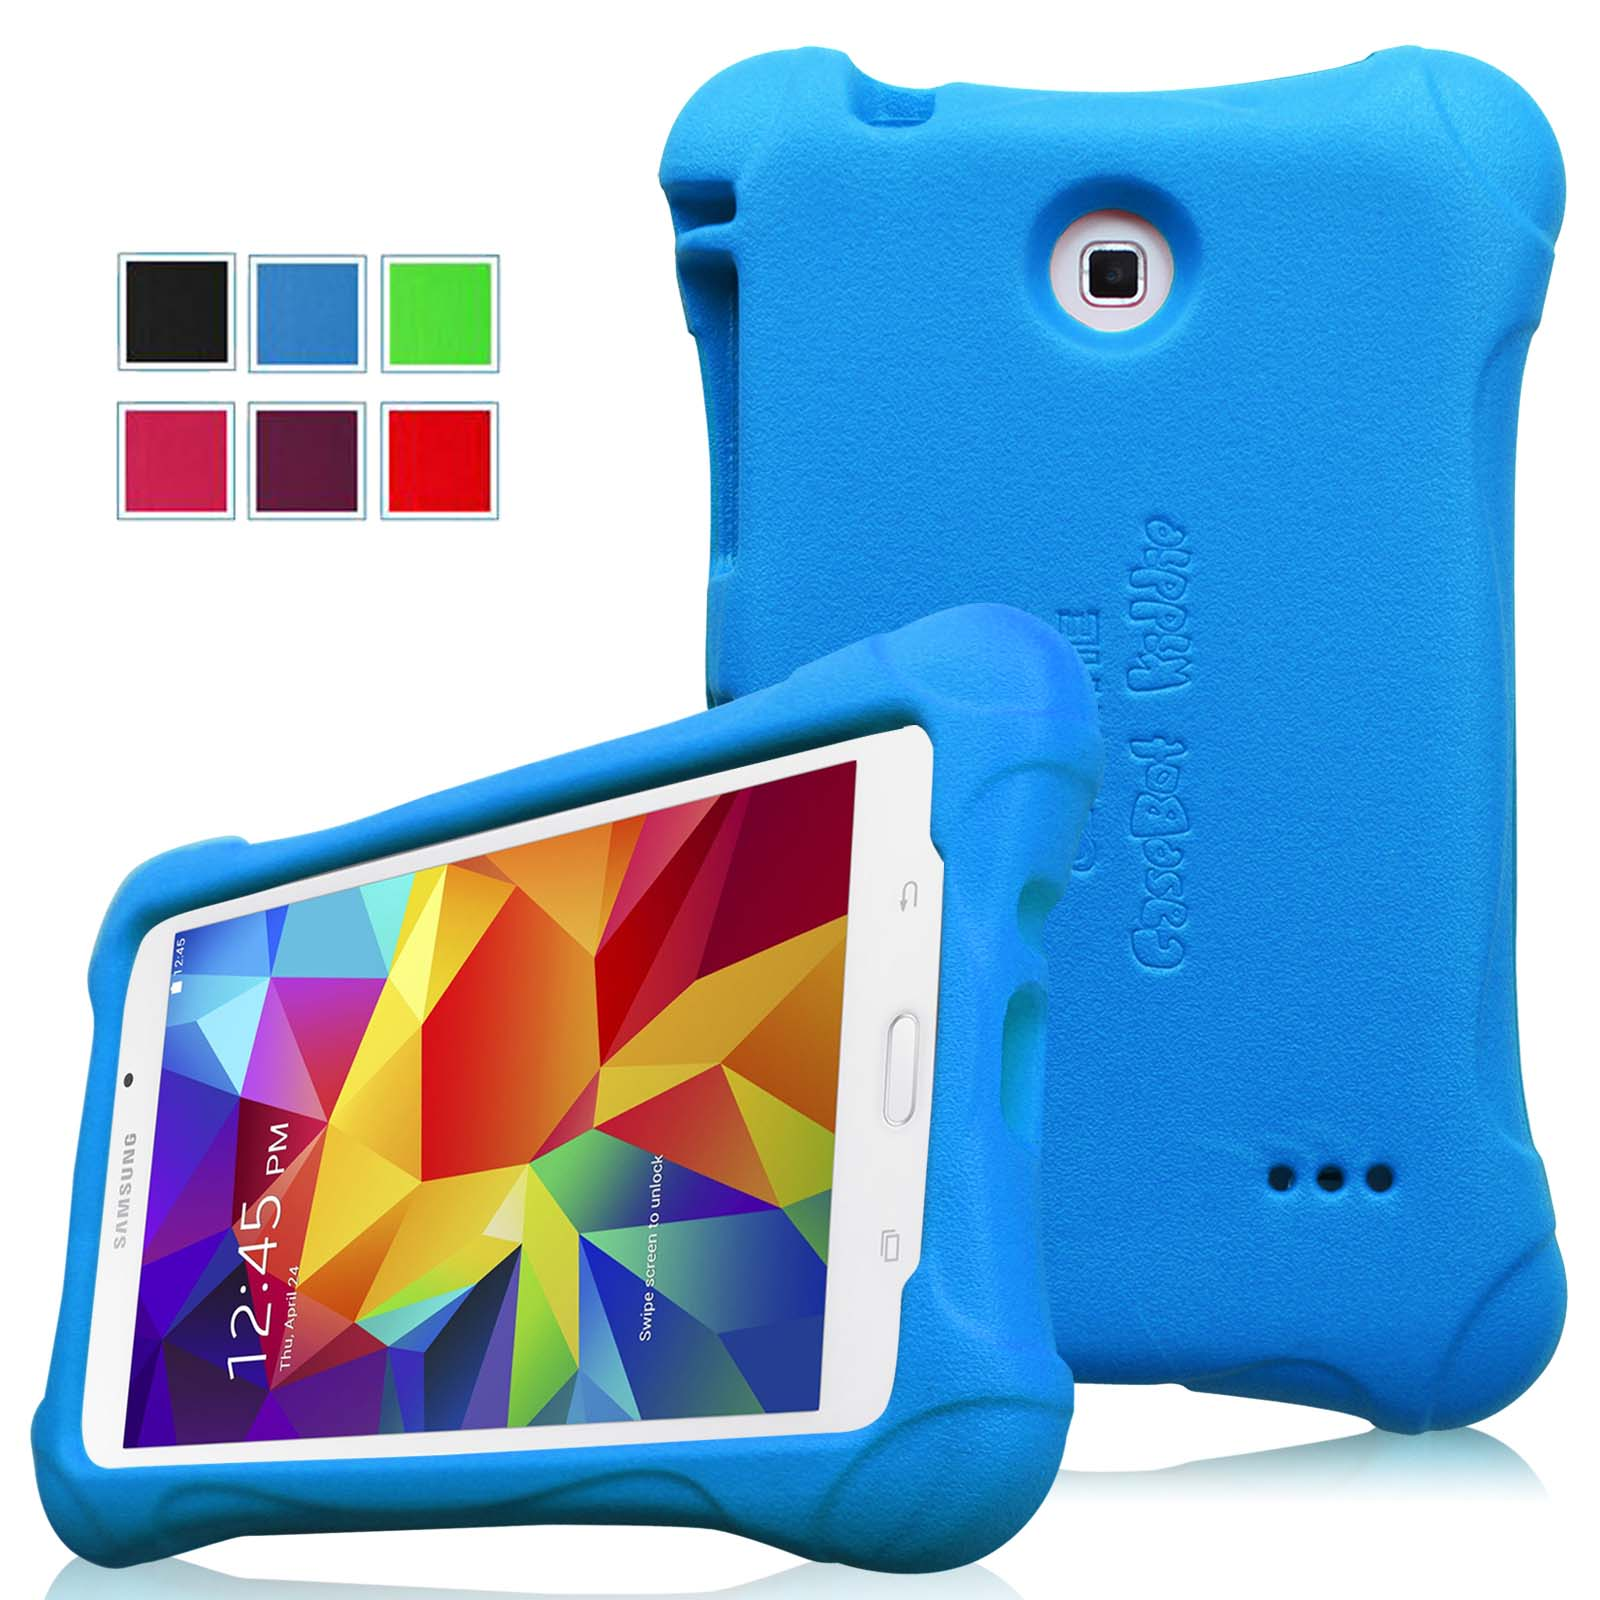 Fintie Samsung Galaxy Tab 4 7.0 Inch Kiddie Case - Ultra Light Weight Shock Proof Kids Friendly Cover, Blue